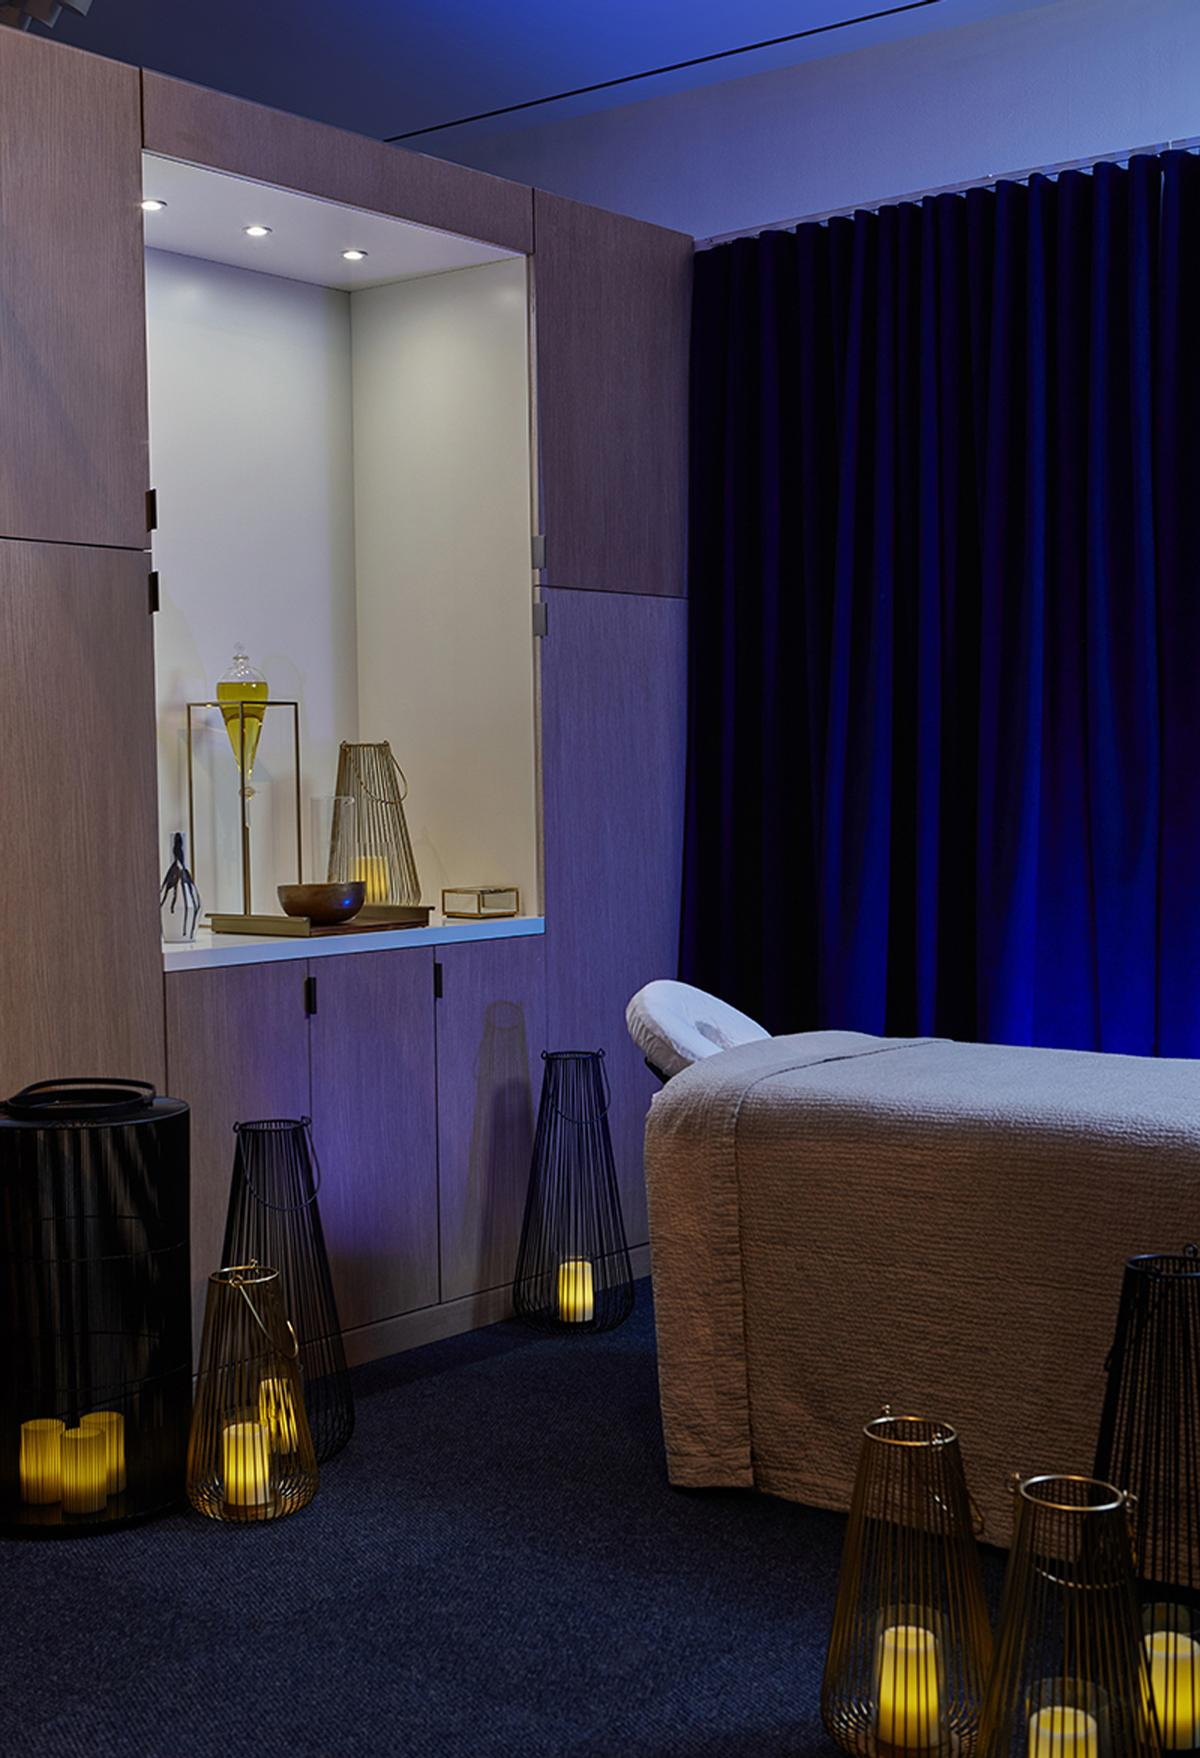 The treatment rooms and waiting area can be transformed into a single large space for meditation classes or lectures.